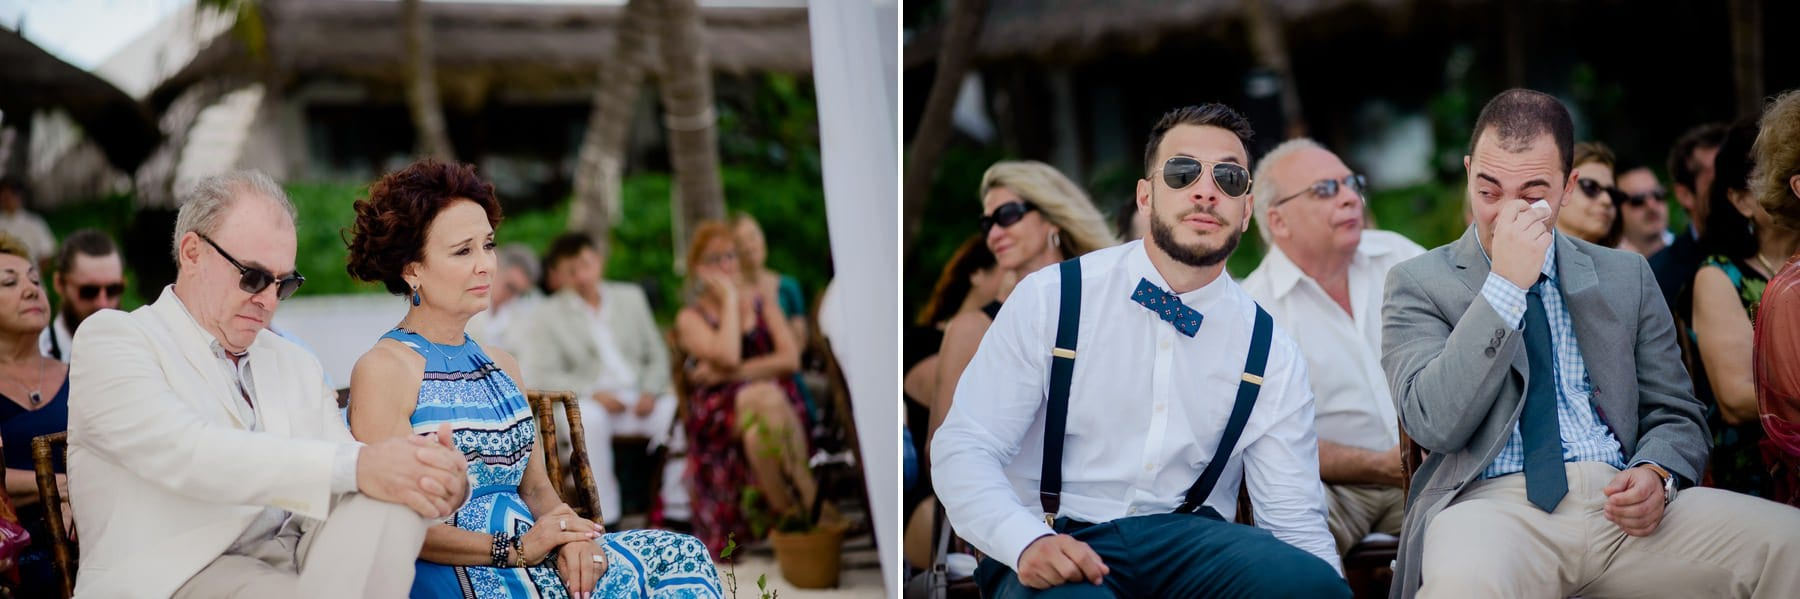 tulum-wedding-photographer-93